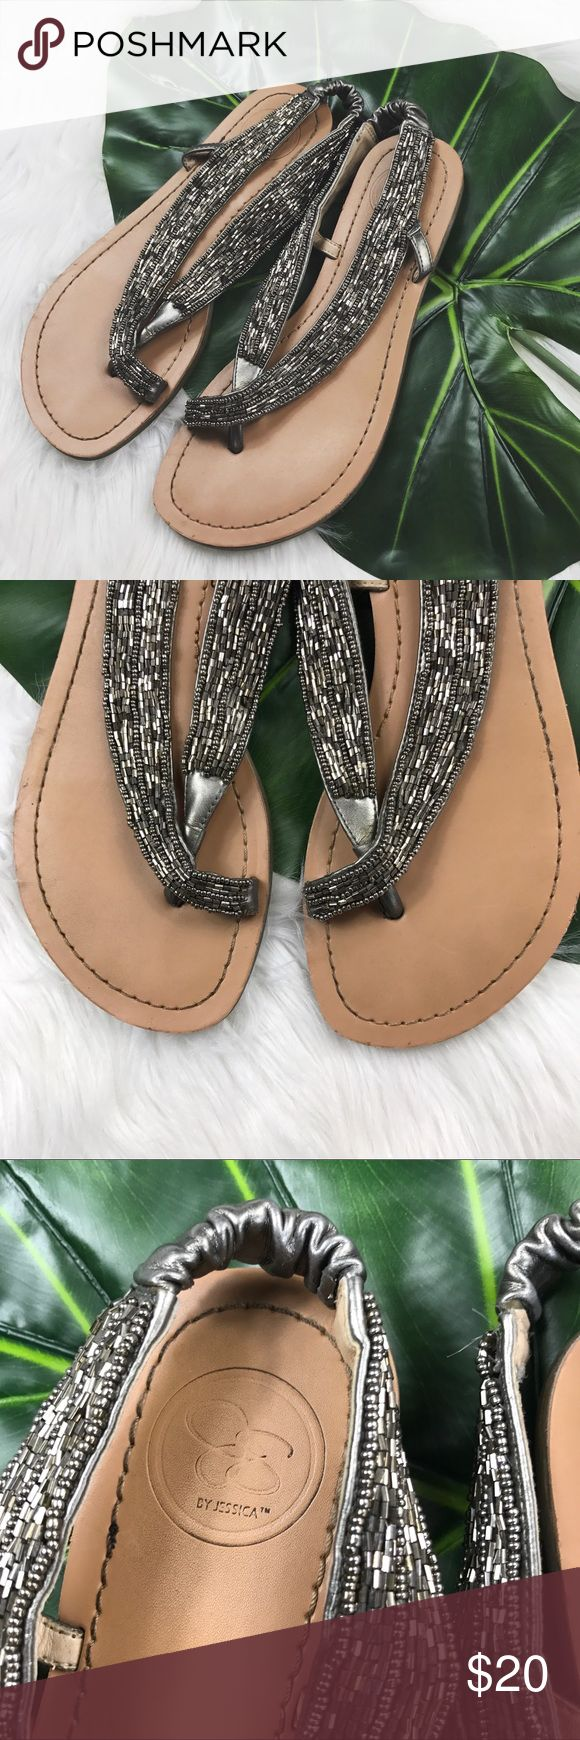 Silver Beaded Slingback Sandals In excellent used condition! Jessica Simpson Shoes Sandals